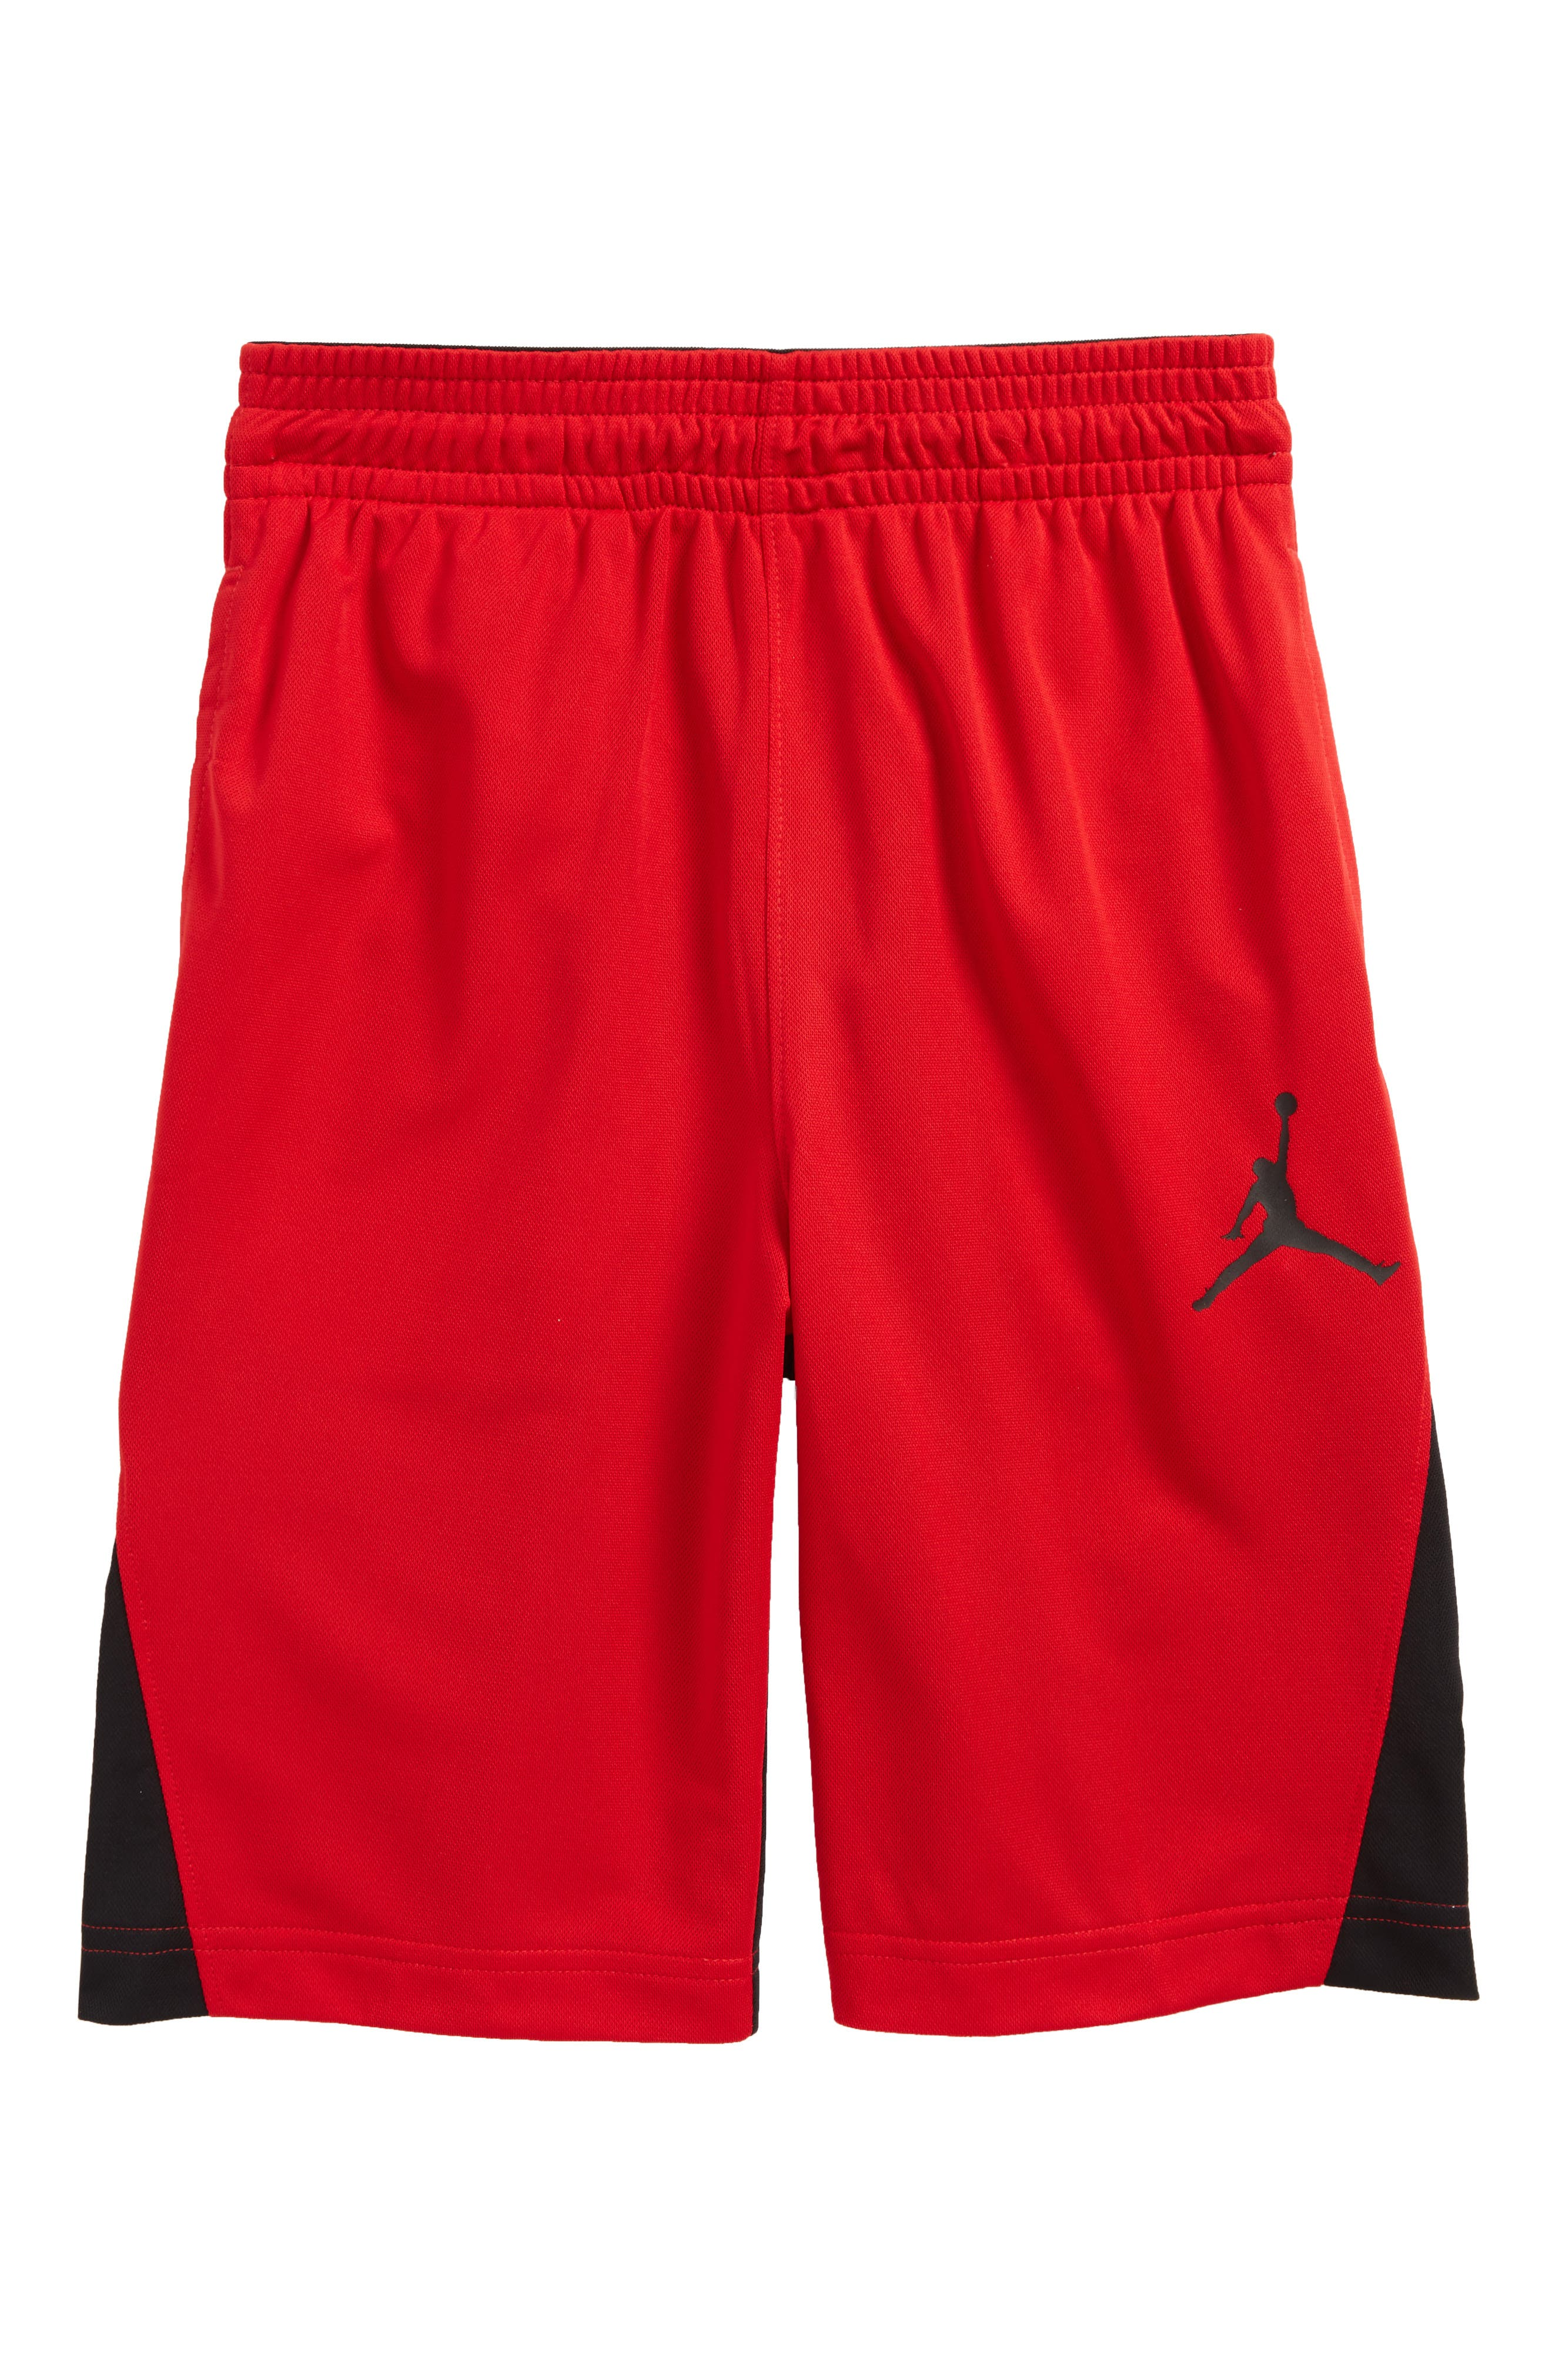 Jordan Speckle 23 Basketball Shorts,                             Main thumbnail 1, color,                             Gym Red